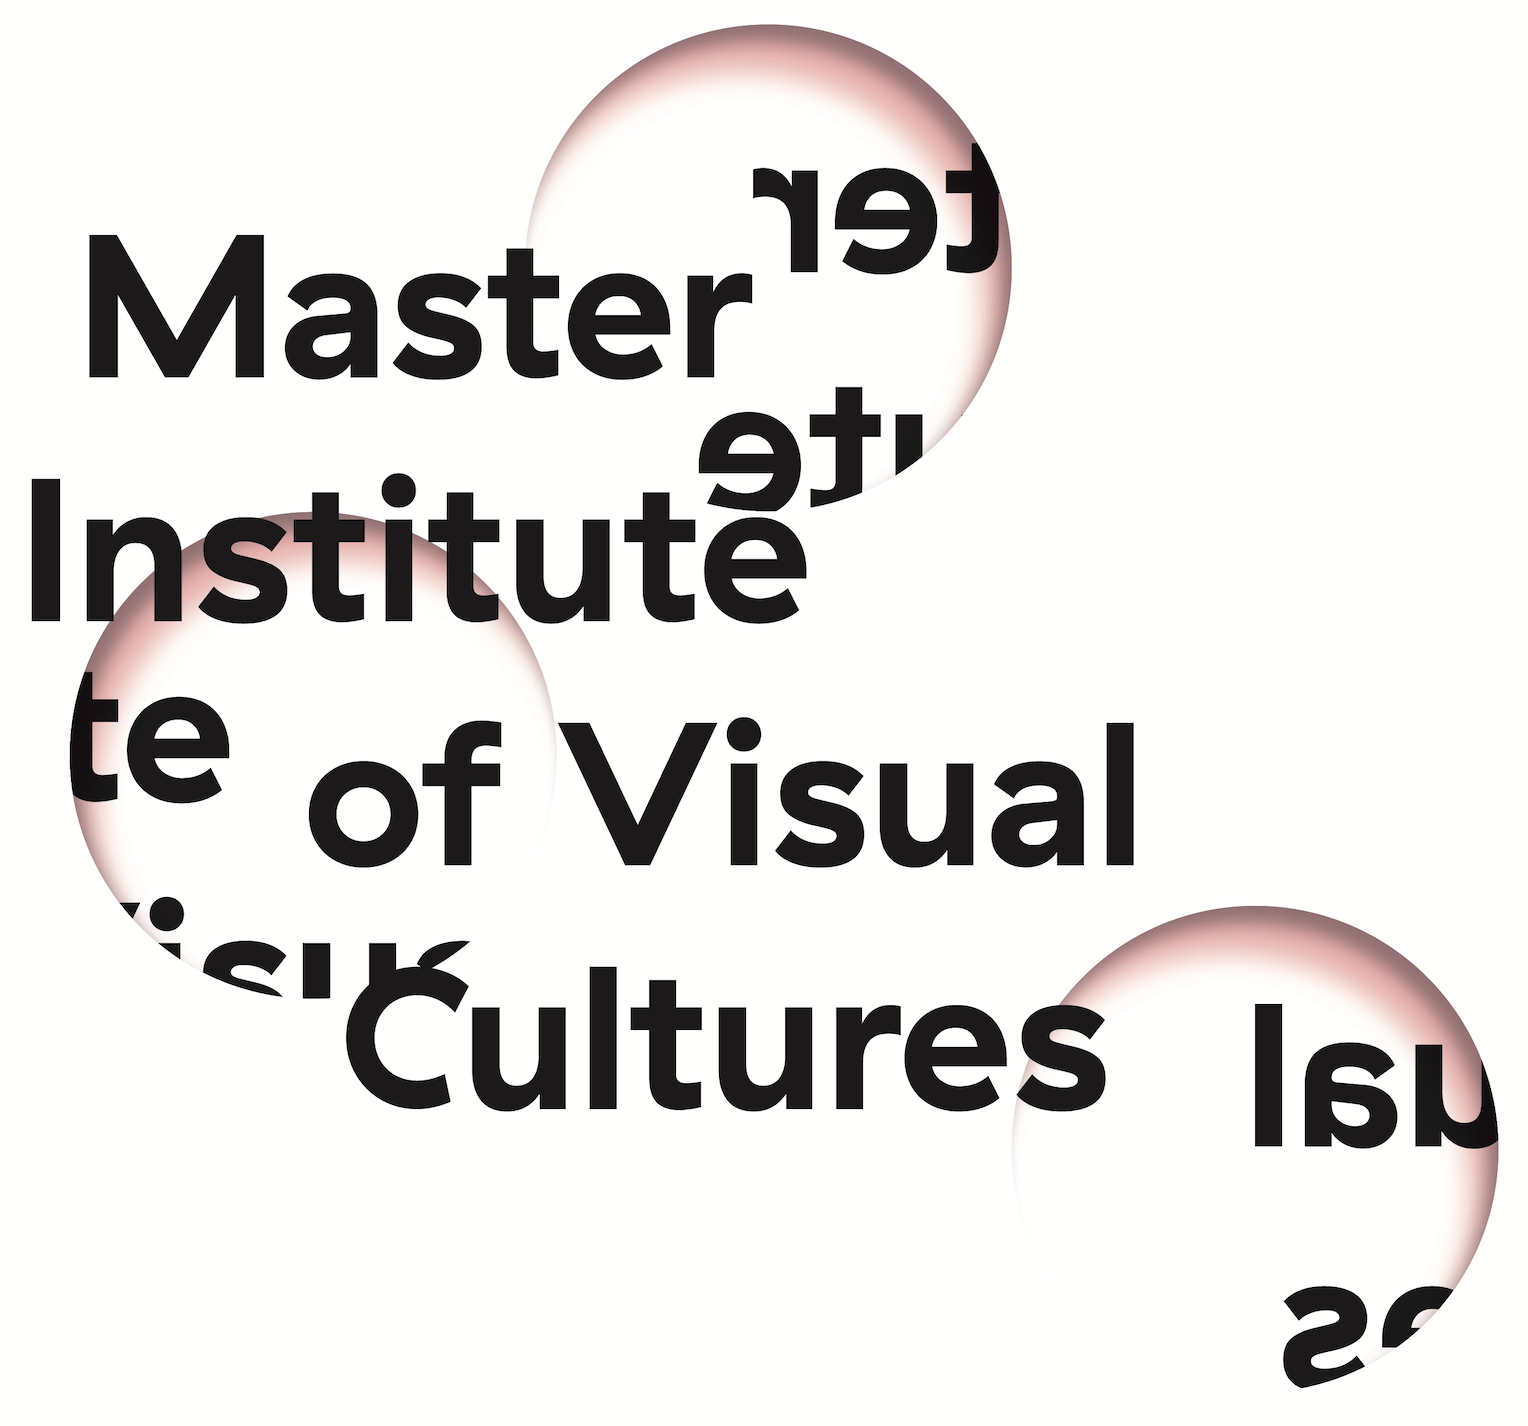 Logo for Master Insitute of Visual Cultures – St. Joost